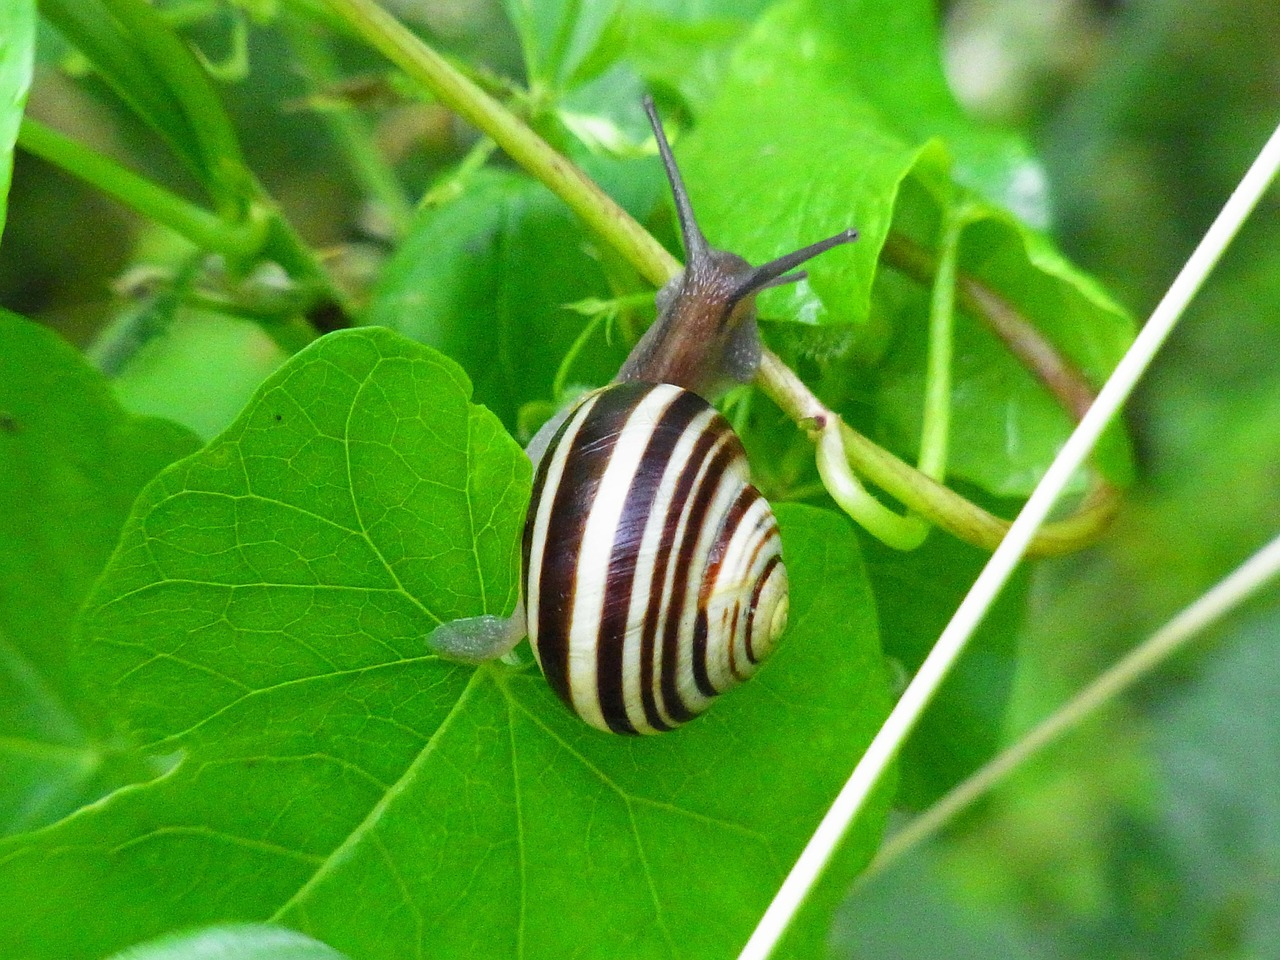 snail invertebrates animal free photo